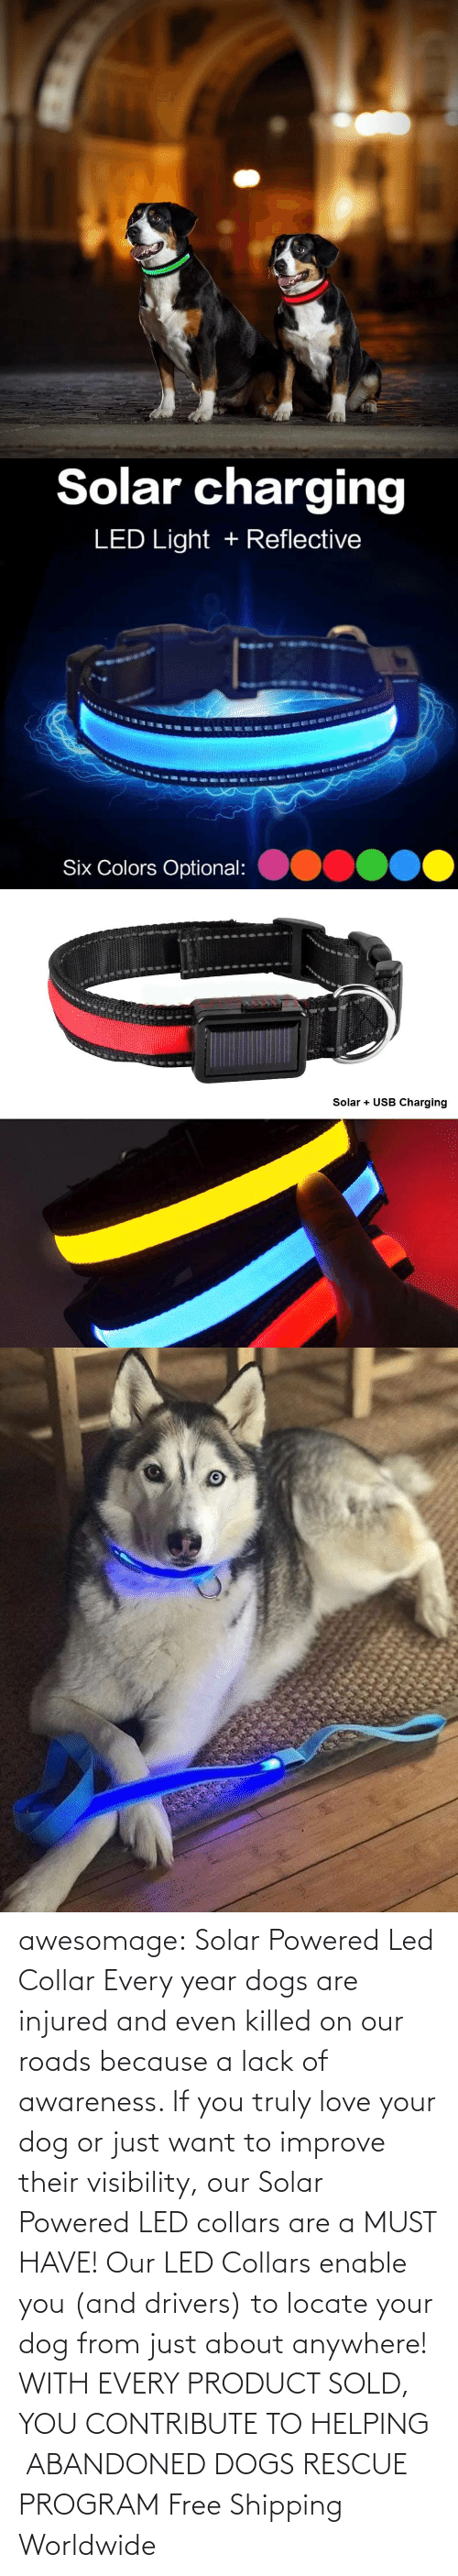 helping: awesomage: Solar Powered Led Collar   Every year dogs are injured and even killed on our roads because a lack of awareness. If you truly love your dog or just want to improve their visibility, our Solar Powered LED collars are a MUST HAVE!   Our LED Collars enable you (and drivers) to locate your dog from just about anywhere!     WITH EVERY PRODUCT SOLD, YOU CONTRIBUTE TO HELPING  ABANDONED DOGS RESCUE PROGRAM     Free Shipping Worldwide